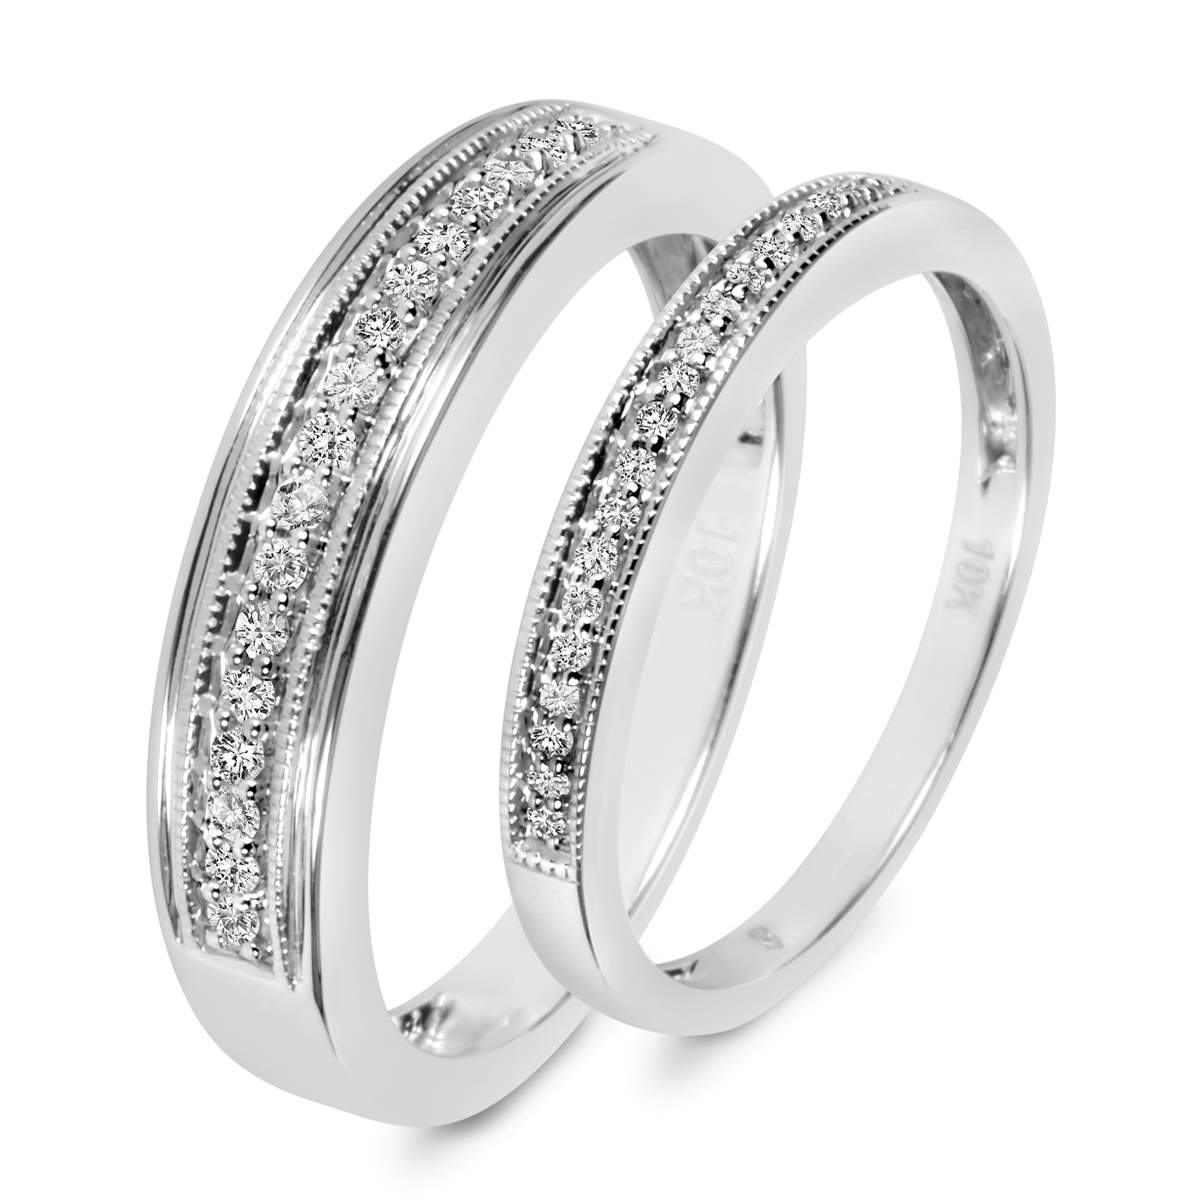 1 4 ct t w diamond his and hers wedding band set 10k white gold